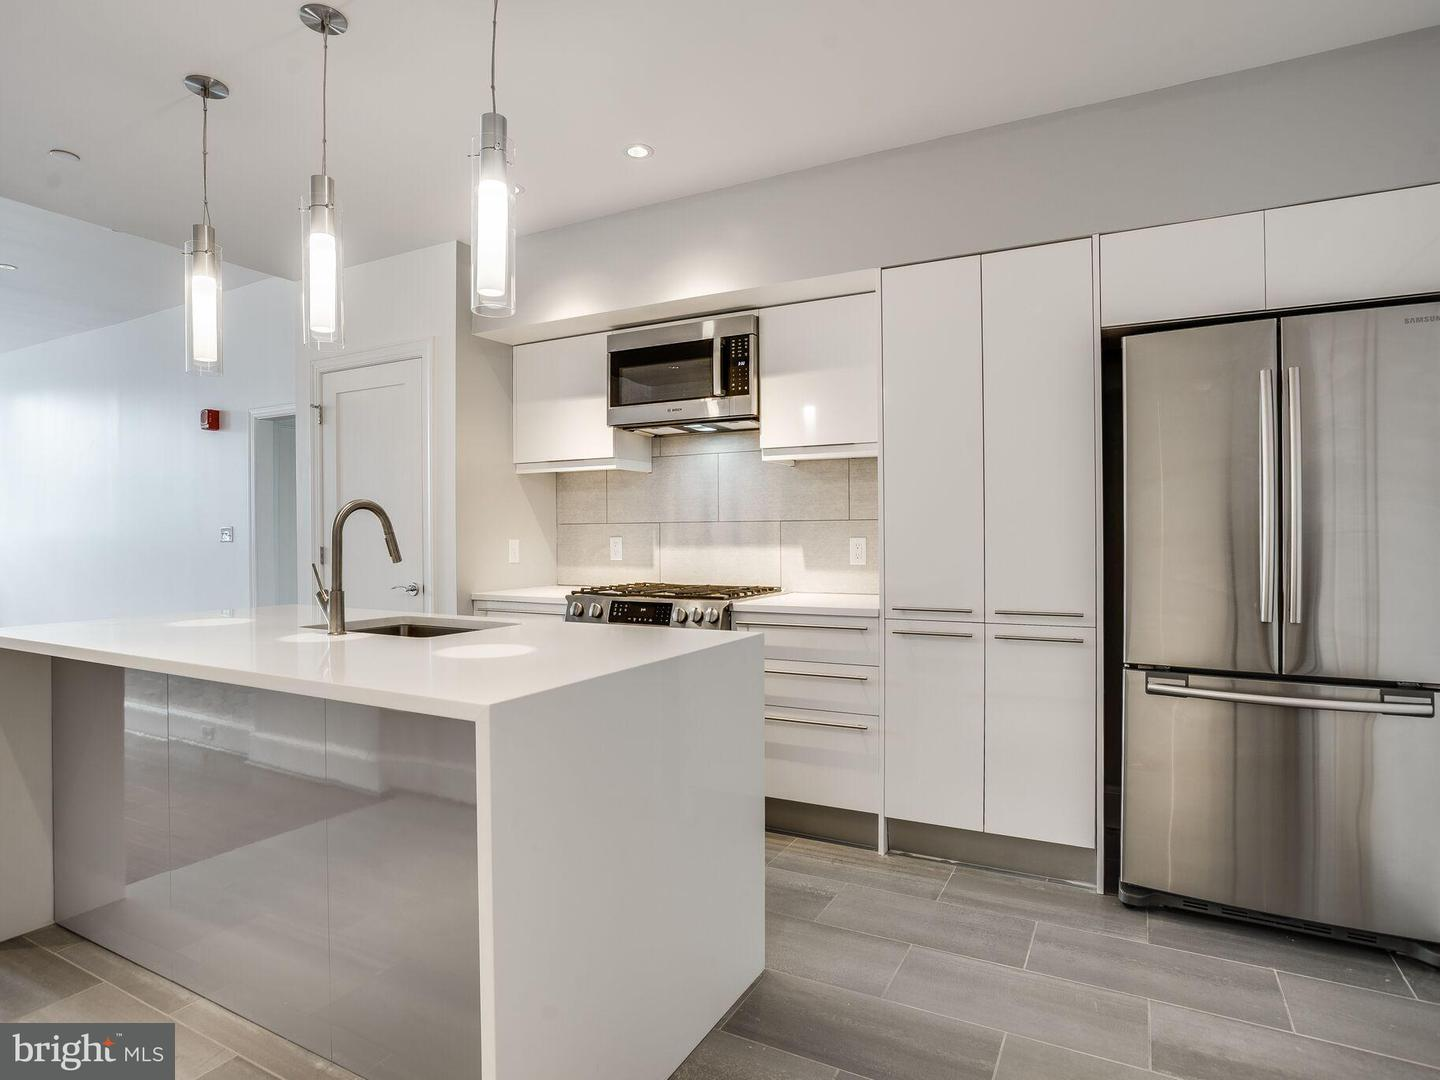 Other Residential for Rent at 1252 Wisconsin Ave NW #302 Washington, District Of Columbia 20007 United States